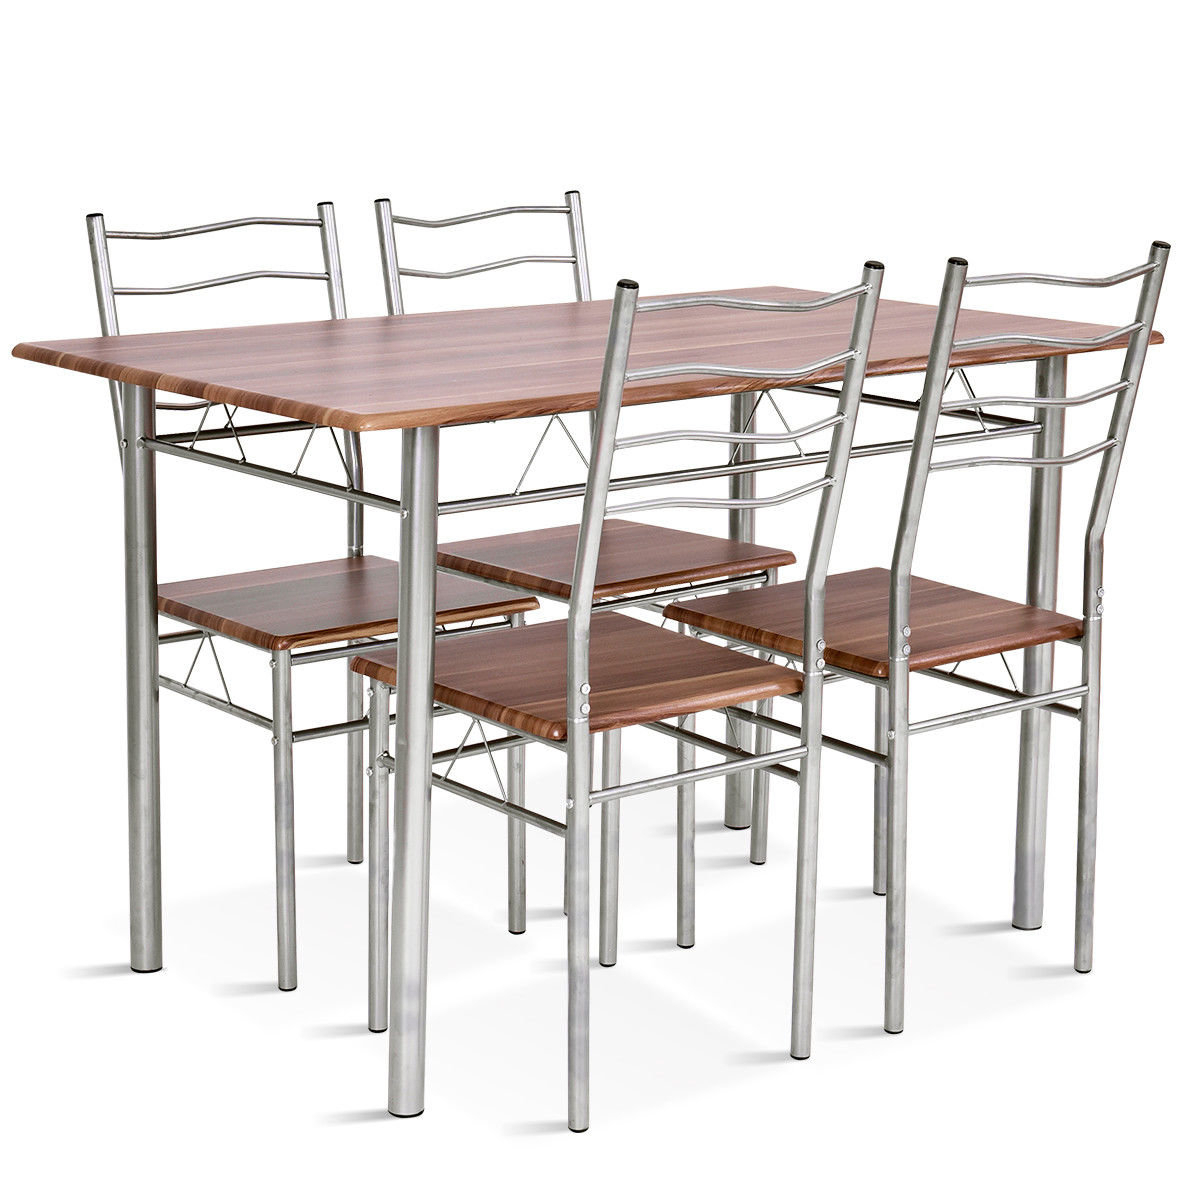 Casiano 5 Piece Dining Set For Most Up To Date Casiano 5 Piece Dining Sets (Gallery 1 of 20)